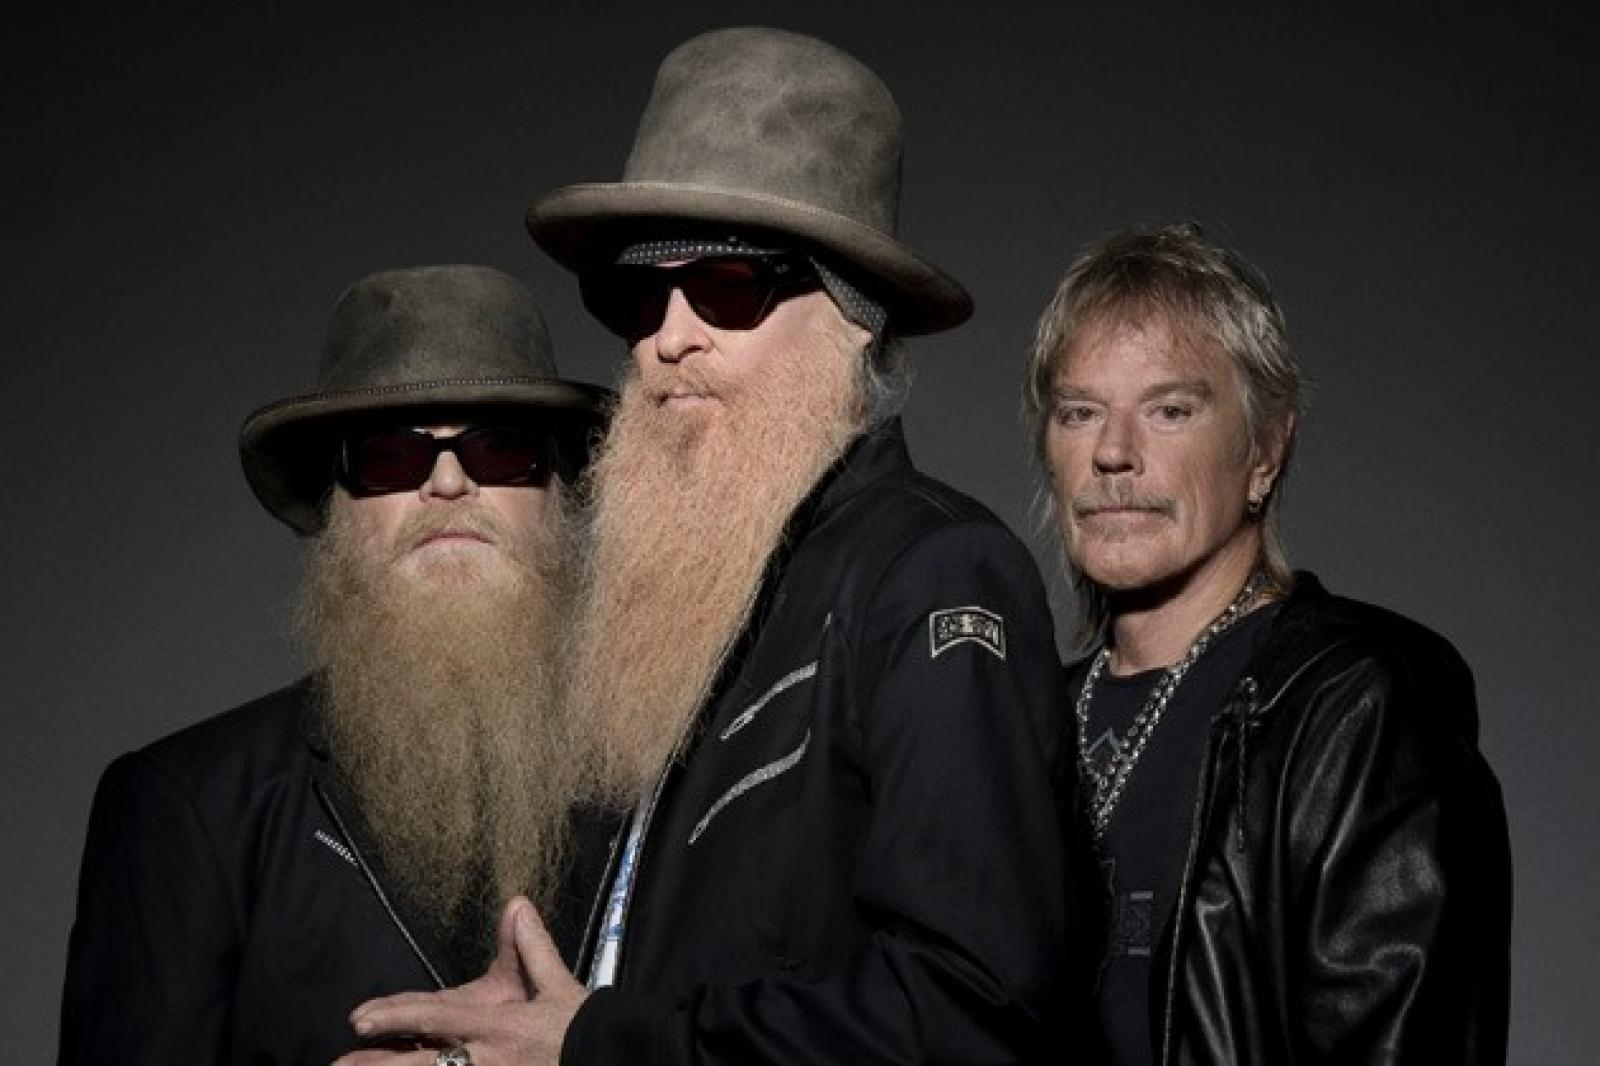 zz top sharp dressed manzz top скачать, zz top sharp dressed man, zz top la grange, zz top слушать, zz top i gotsta get paid, zz top bad to the bone, zz top rough boy, zz top legs, zz top фото, zz top tush, zz top eliminator, zz top pincushion, zz top википедия, zz top без бороды, zz top альбомы, zz top la futura, zz top лучшее, zz top velcro fly, zz top mescalero, zz top afterburner